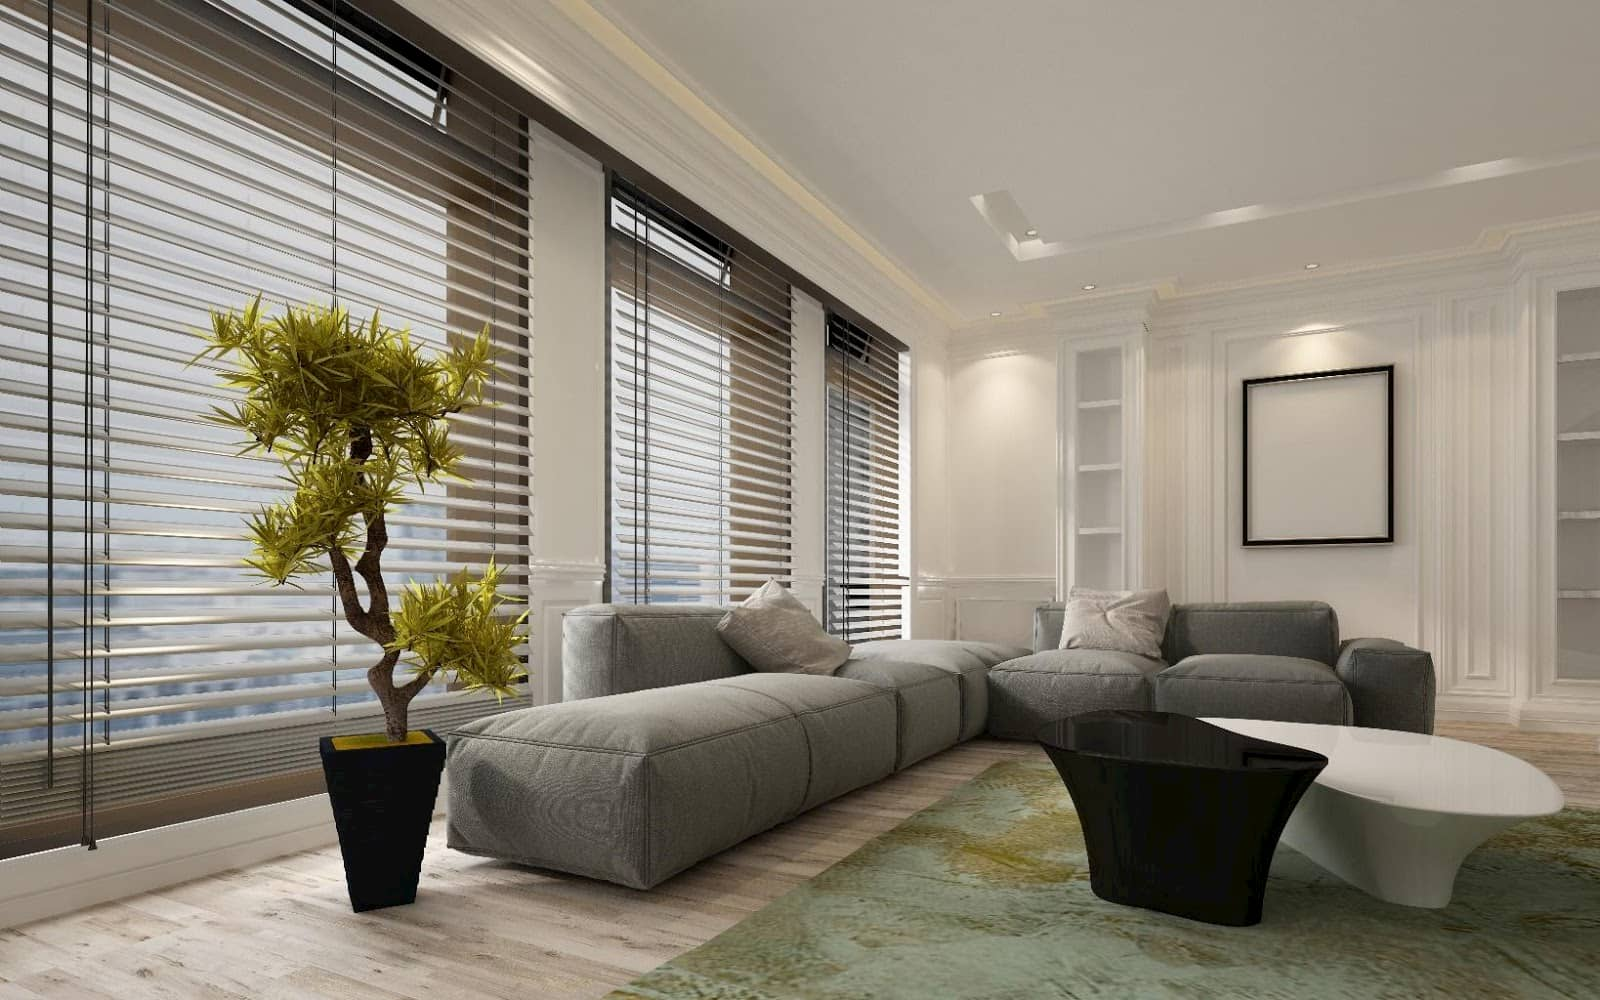 Fancy apartment living room interior with large floor to ceiling window venetian blinds and soft grey modular sofa